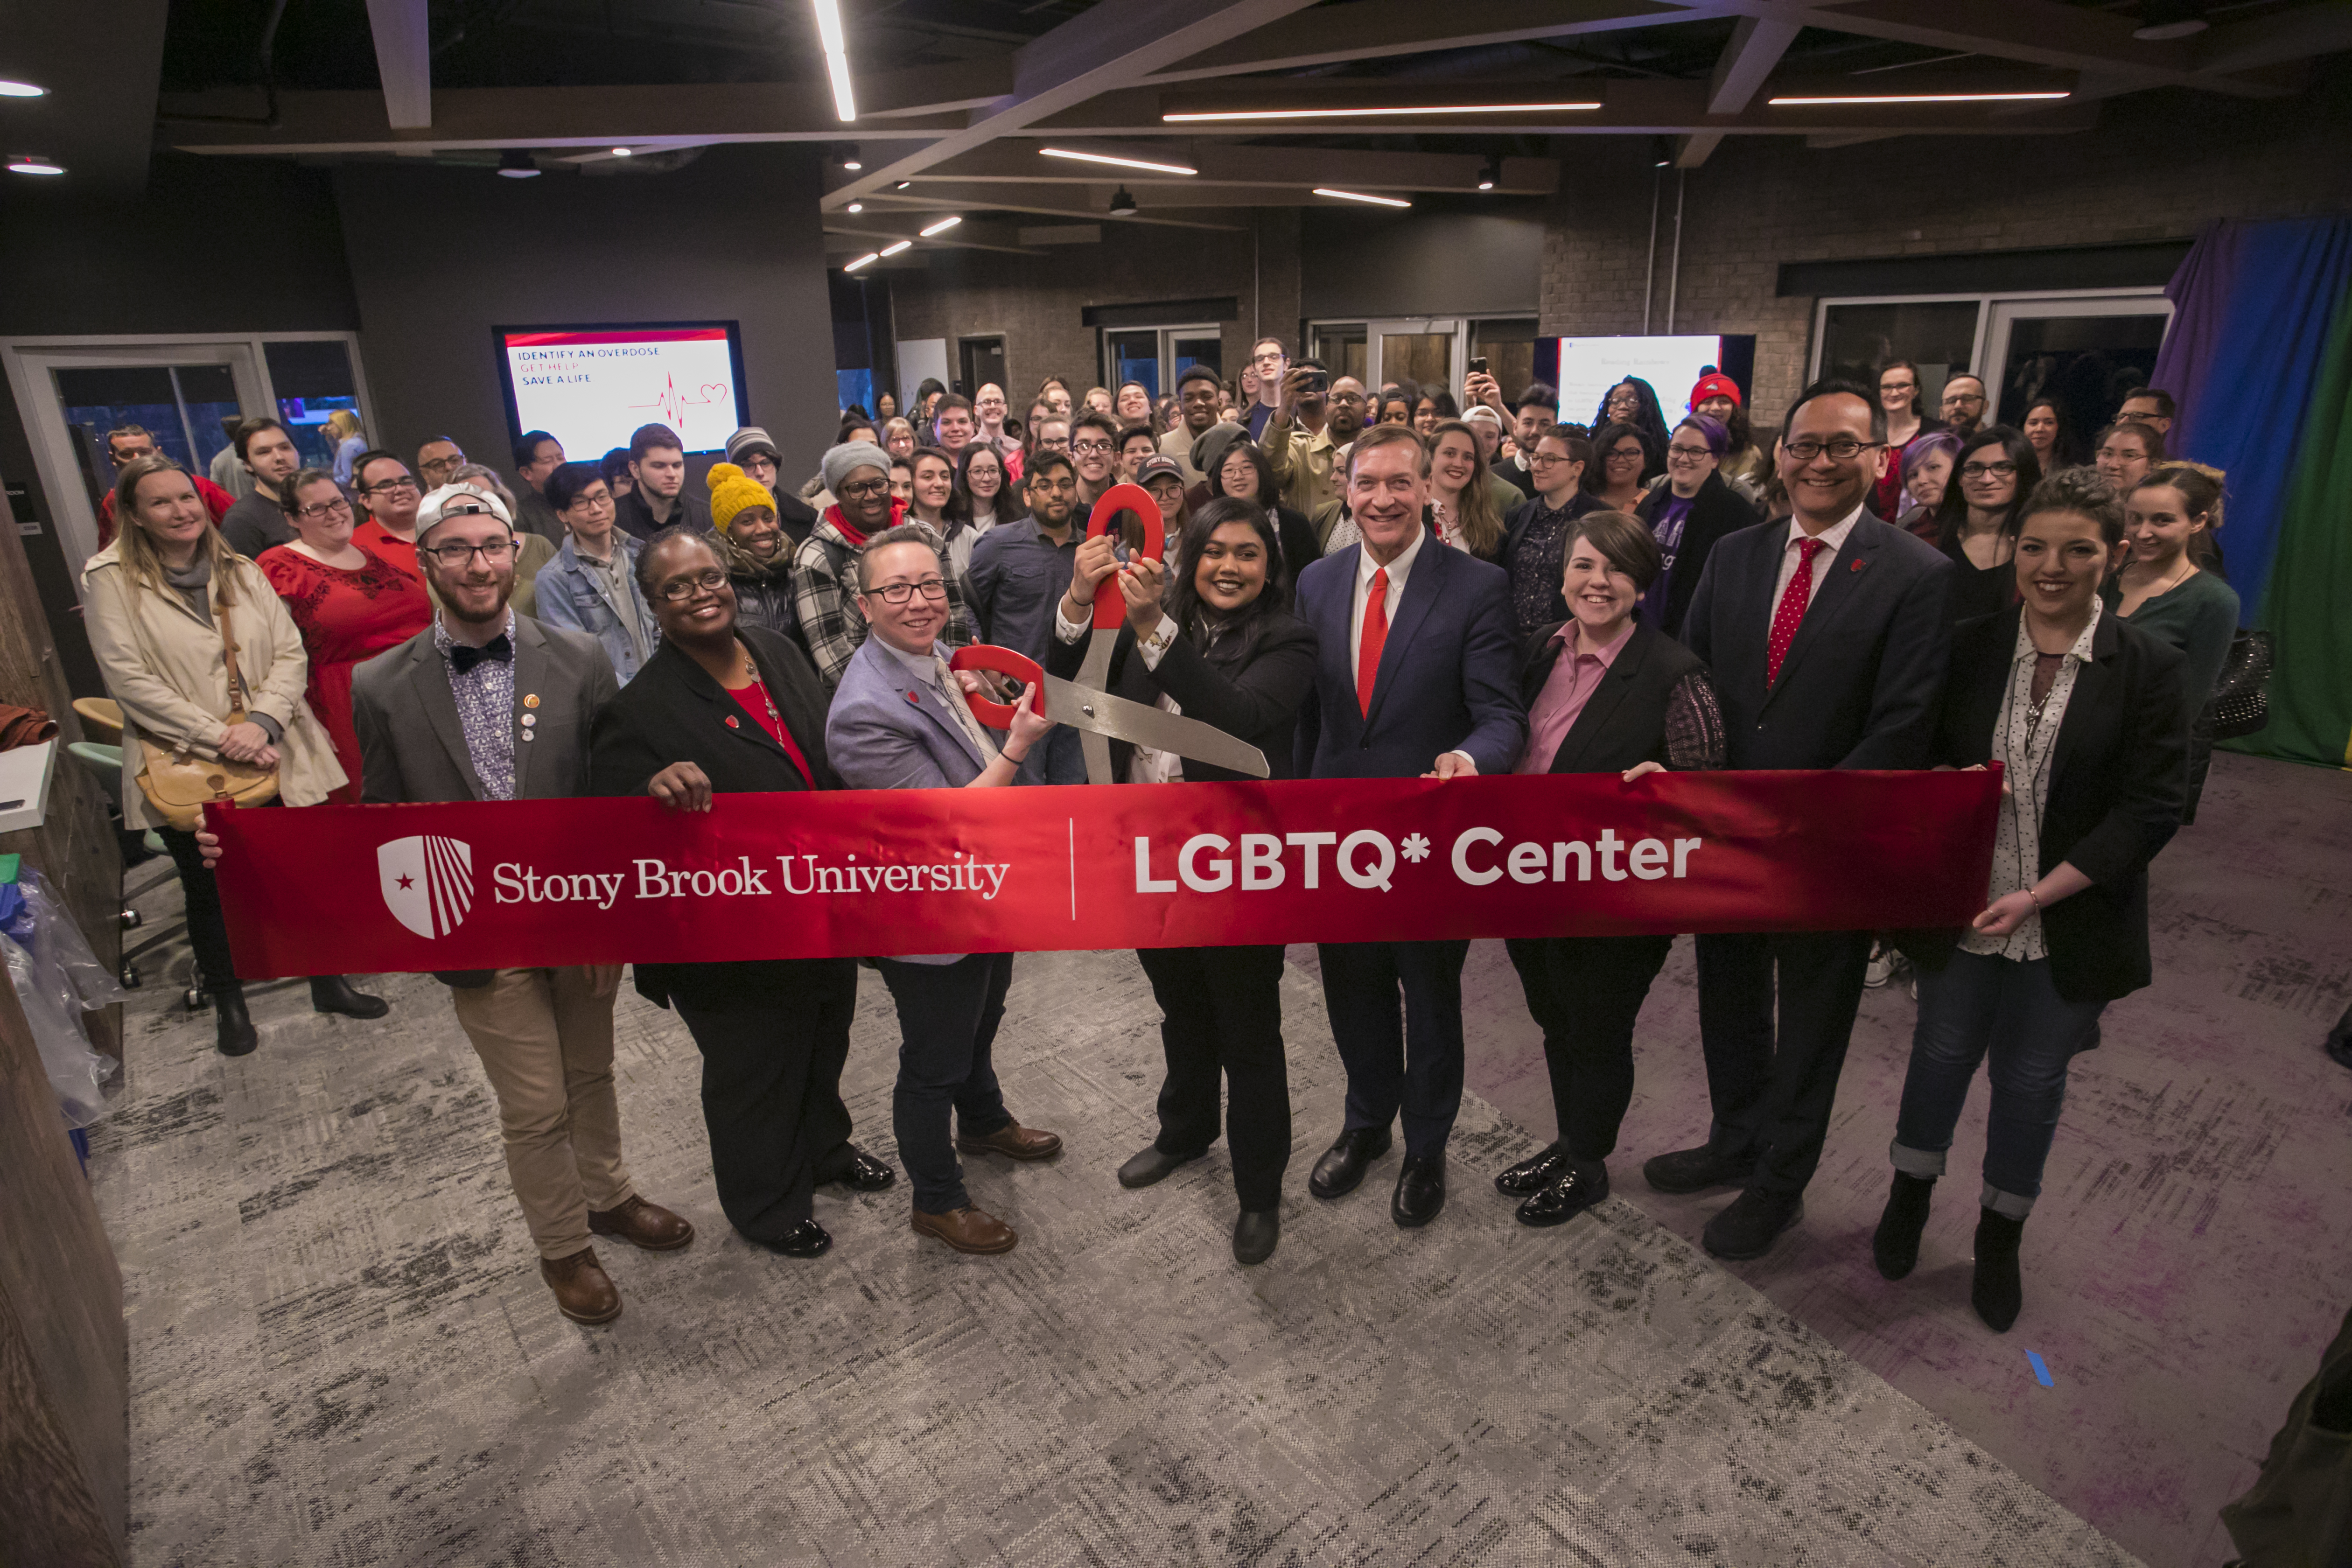 At the LGBTQ* Center grand opening (left to right): Will Argenzio, Cheryl Chambers, Chris Tanaka, Elliot Tanha, President Samuel L. Stanley Jr, El Schneider, Lee Bitsoi and Sydney Gaglio